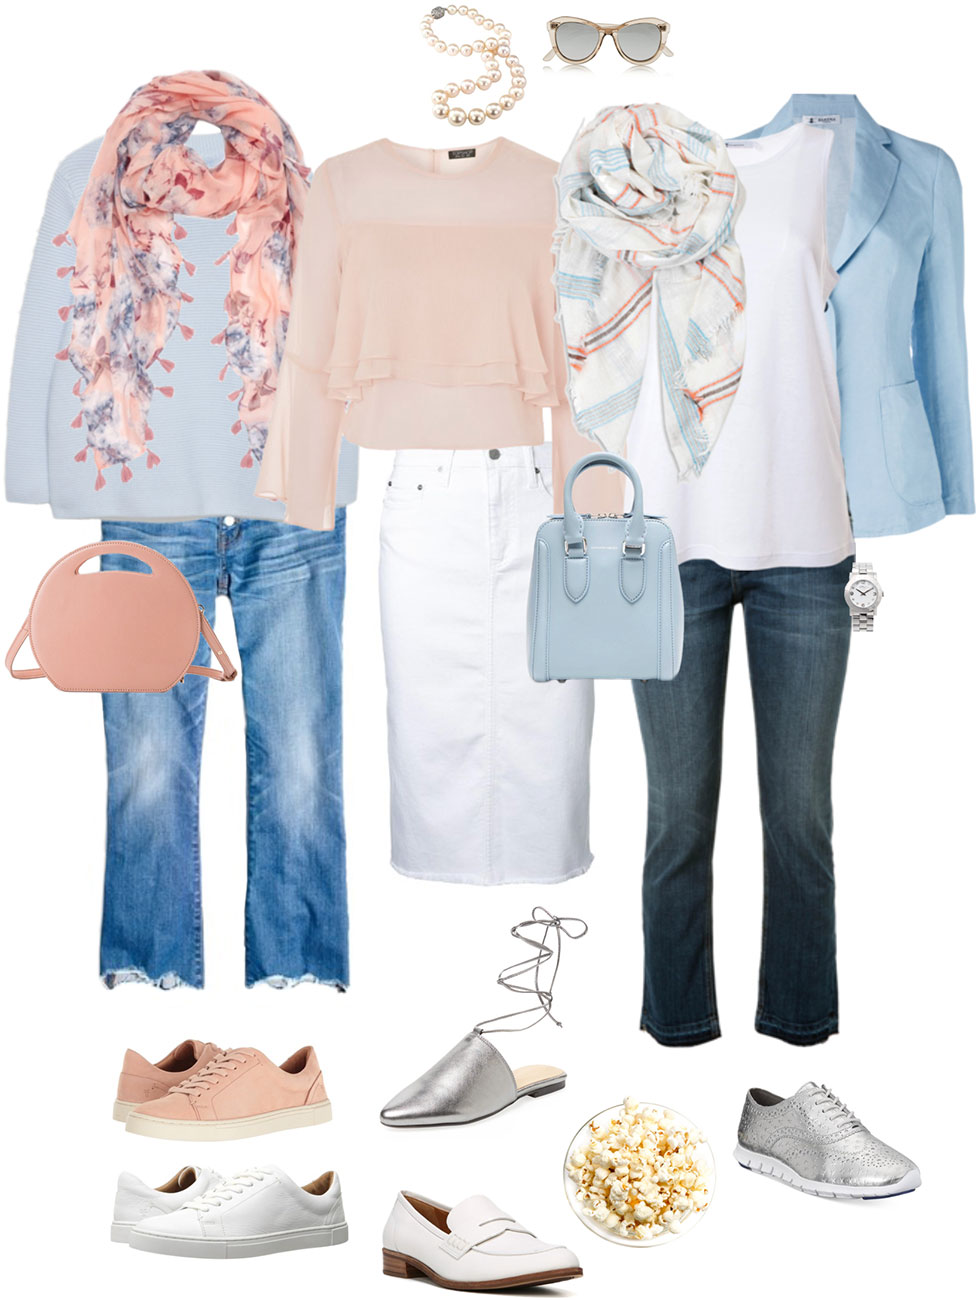 Ensemble: Casual Pastel Pink & Blue